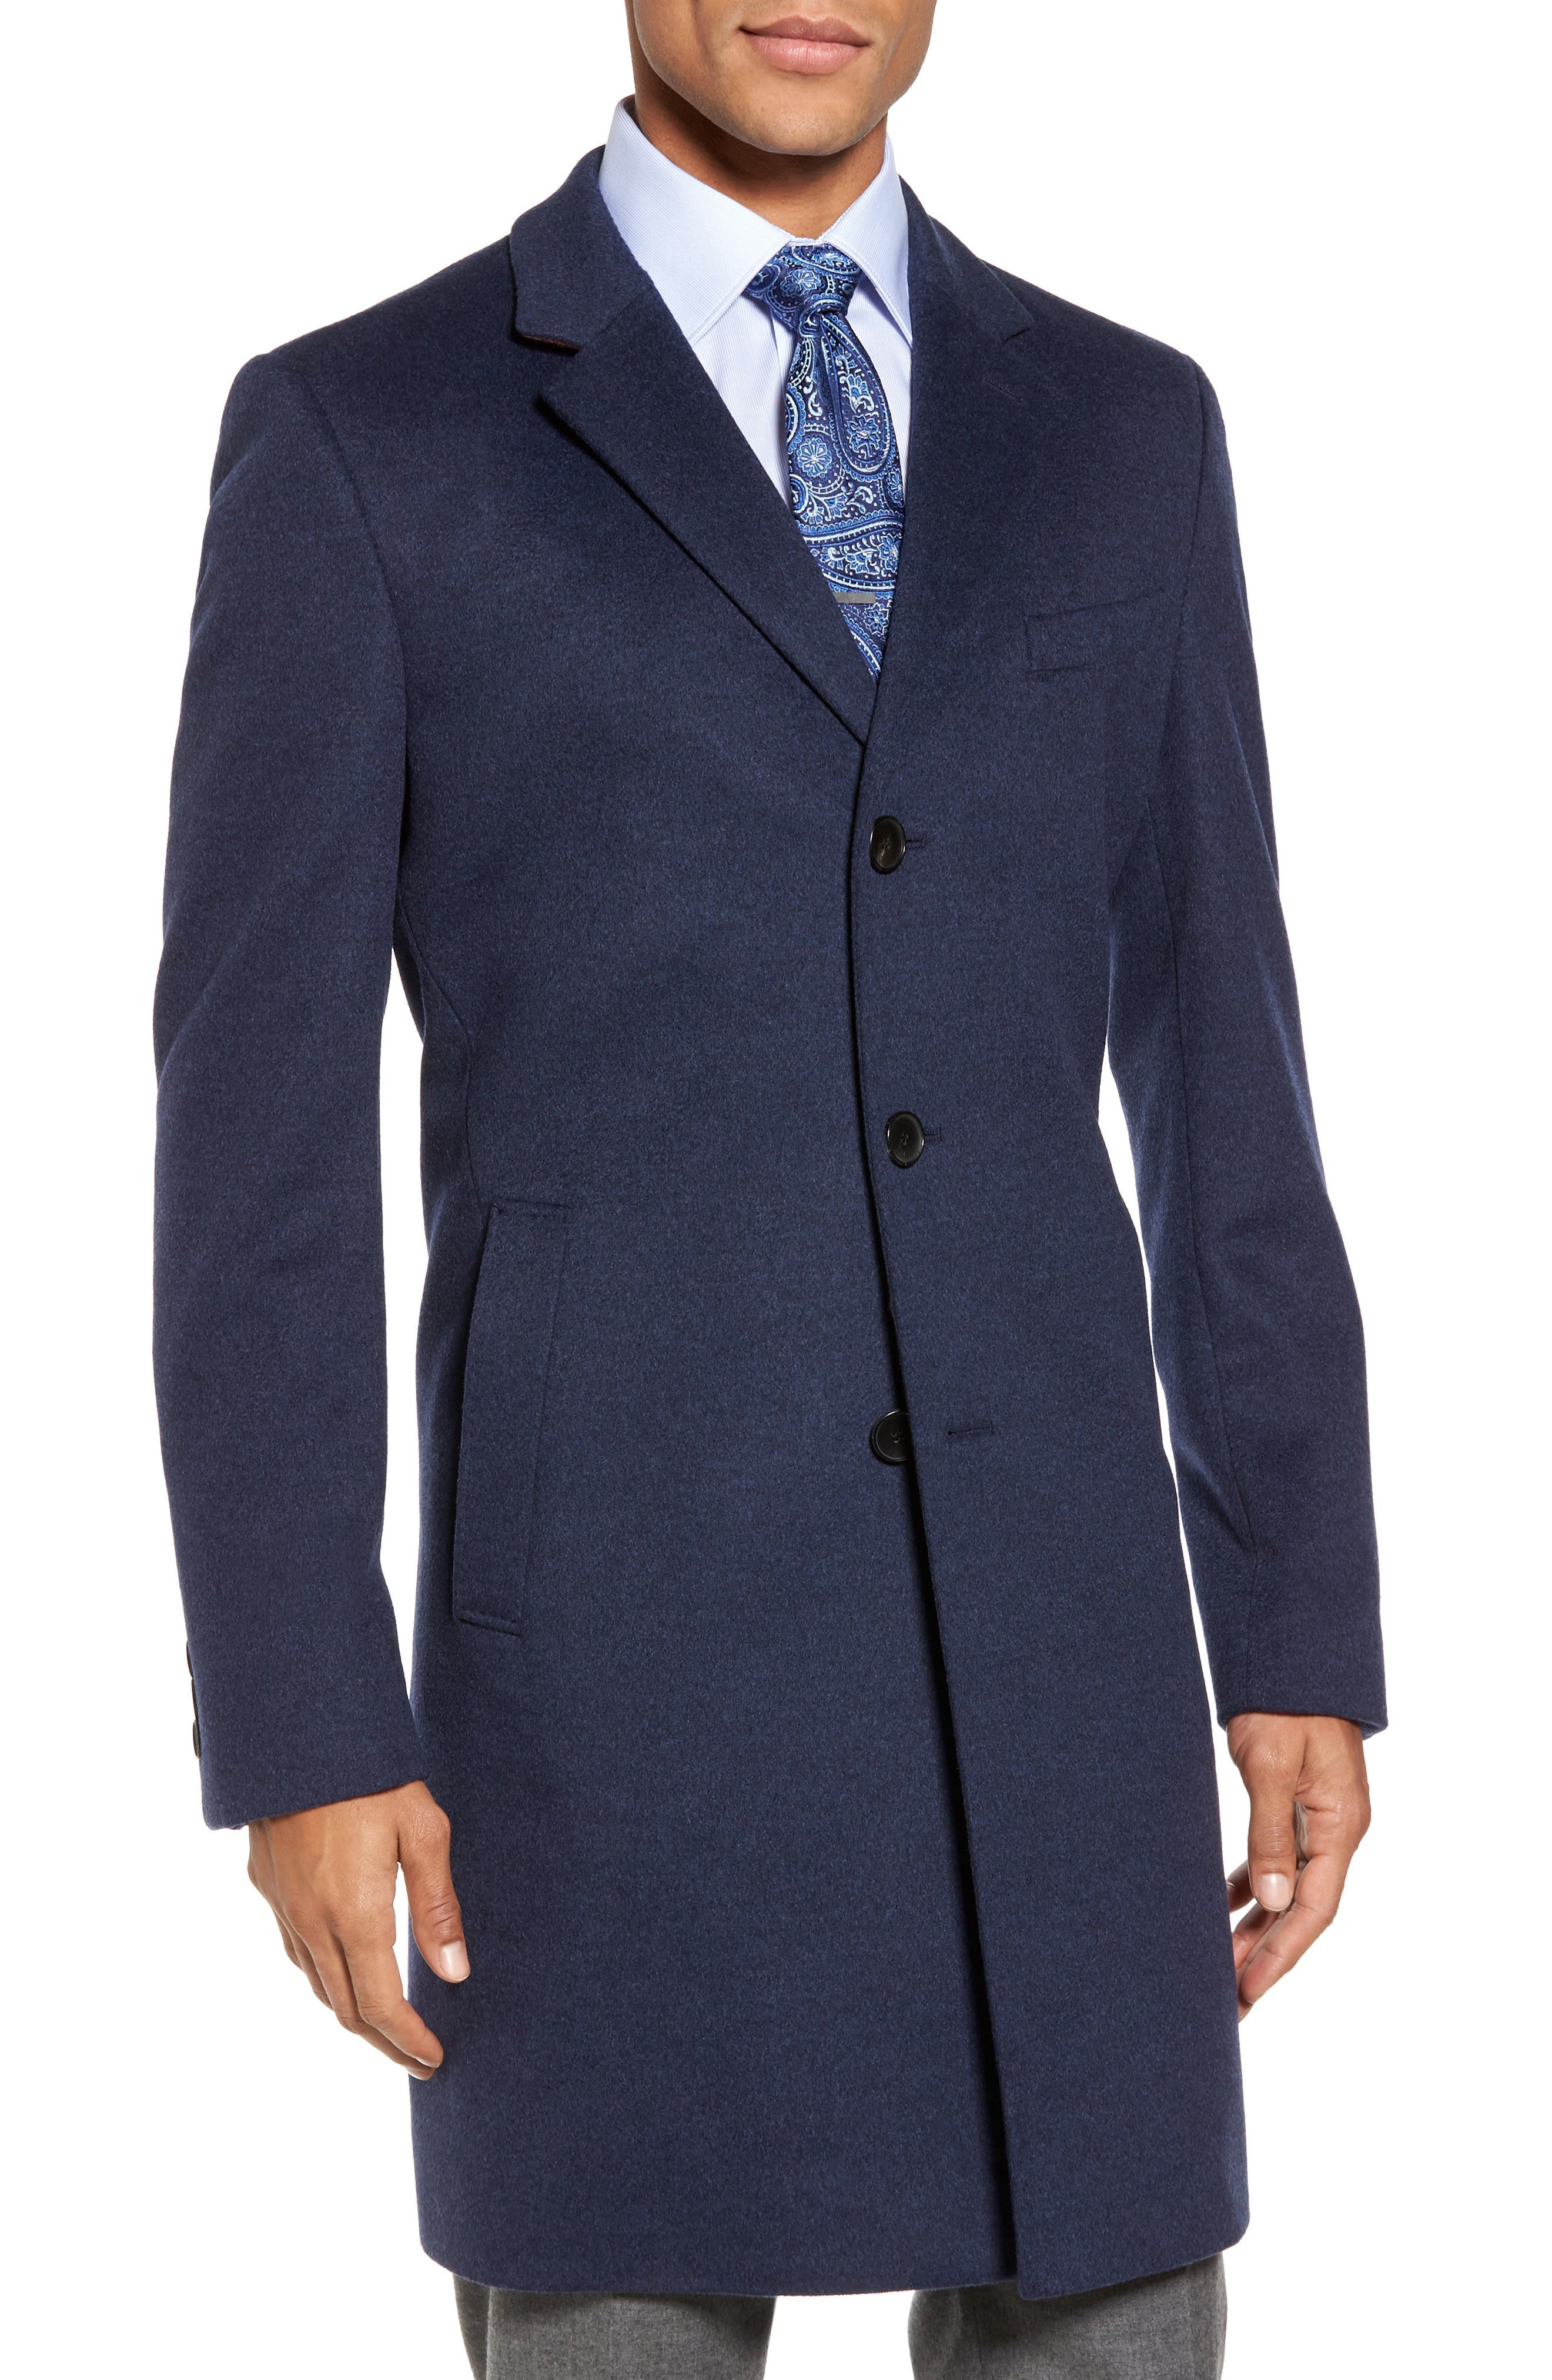 Nye Wool & Cashmere Topcoat,                         Main,                         color, 430